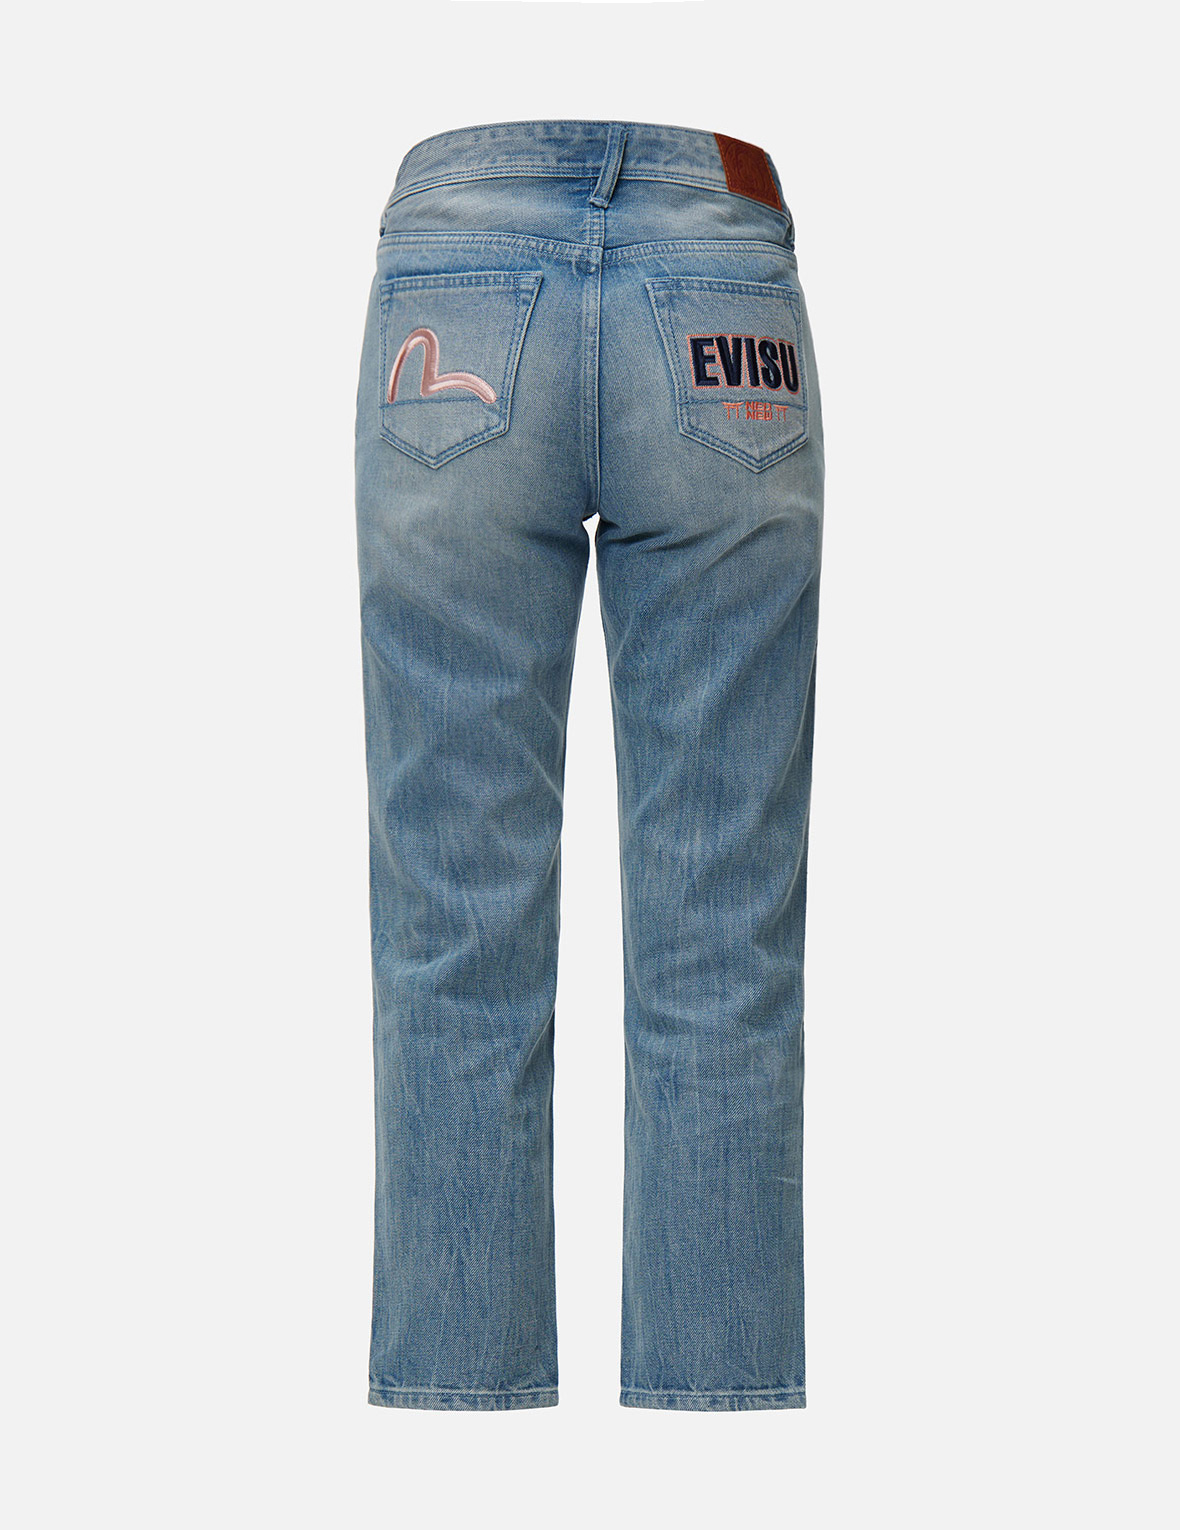 Seagull and Logo Embroidered Relax Fit Jeans